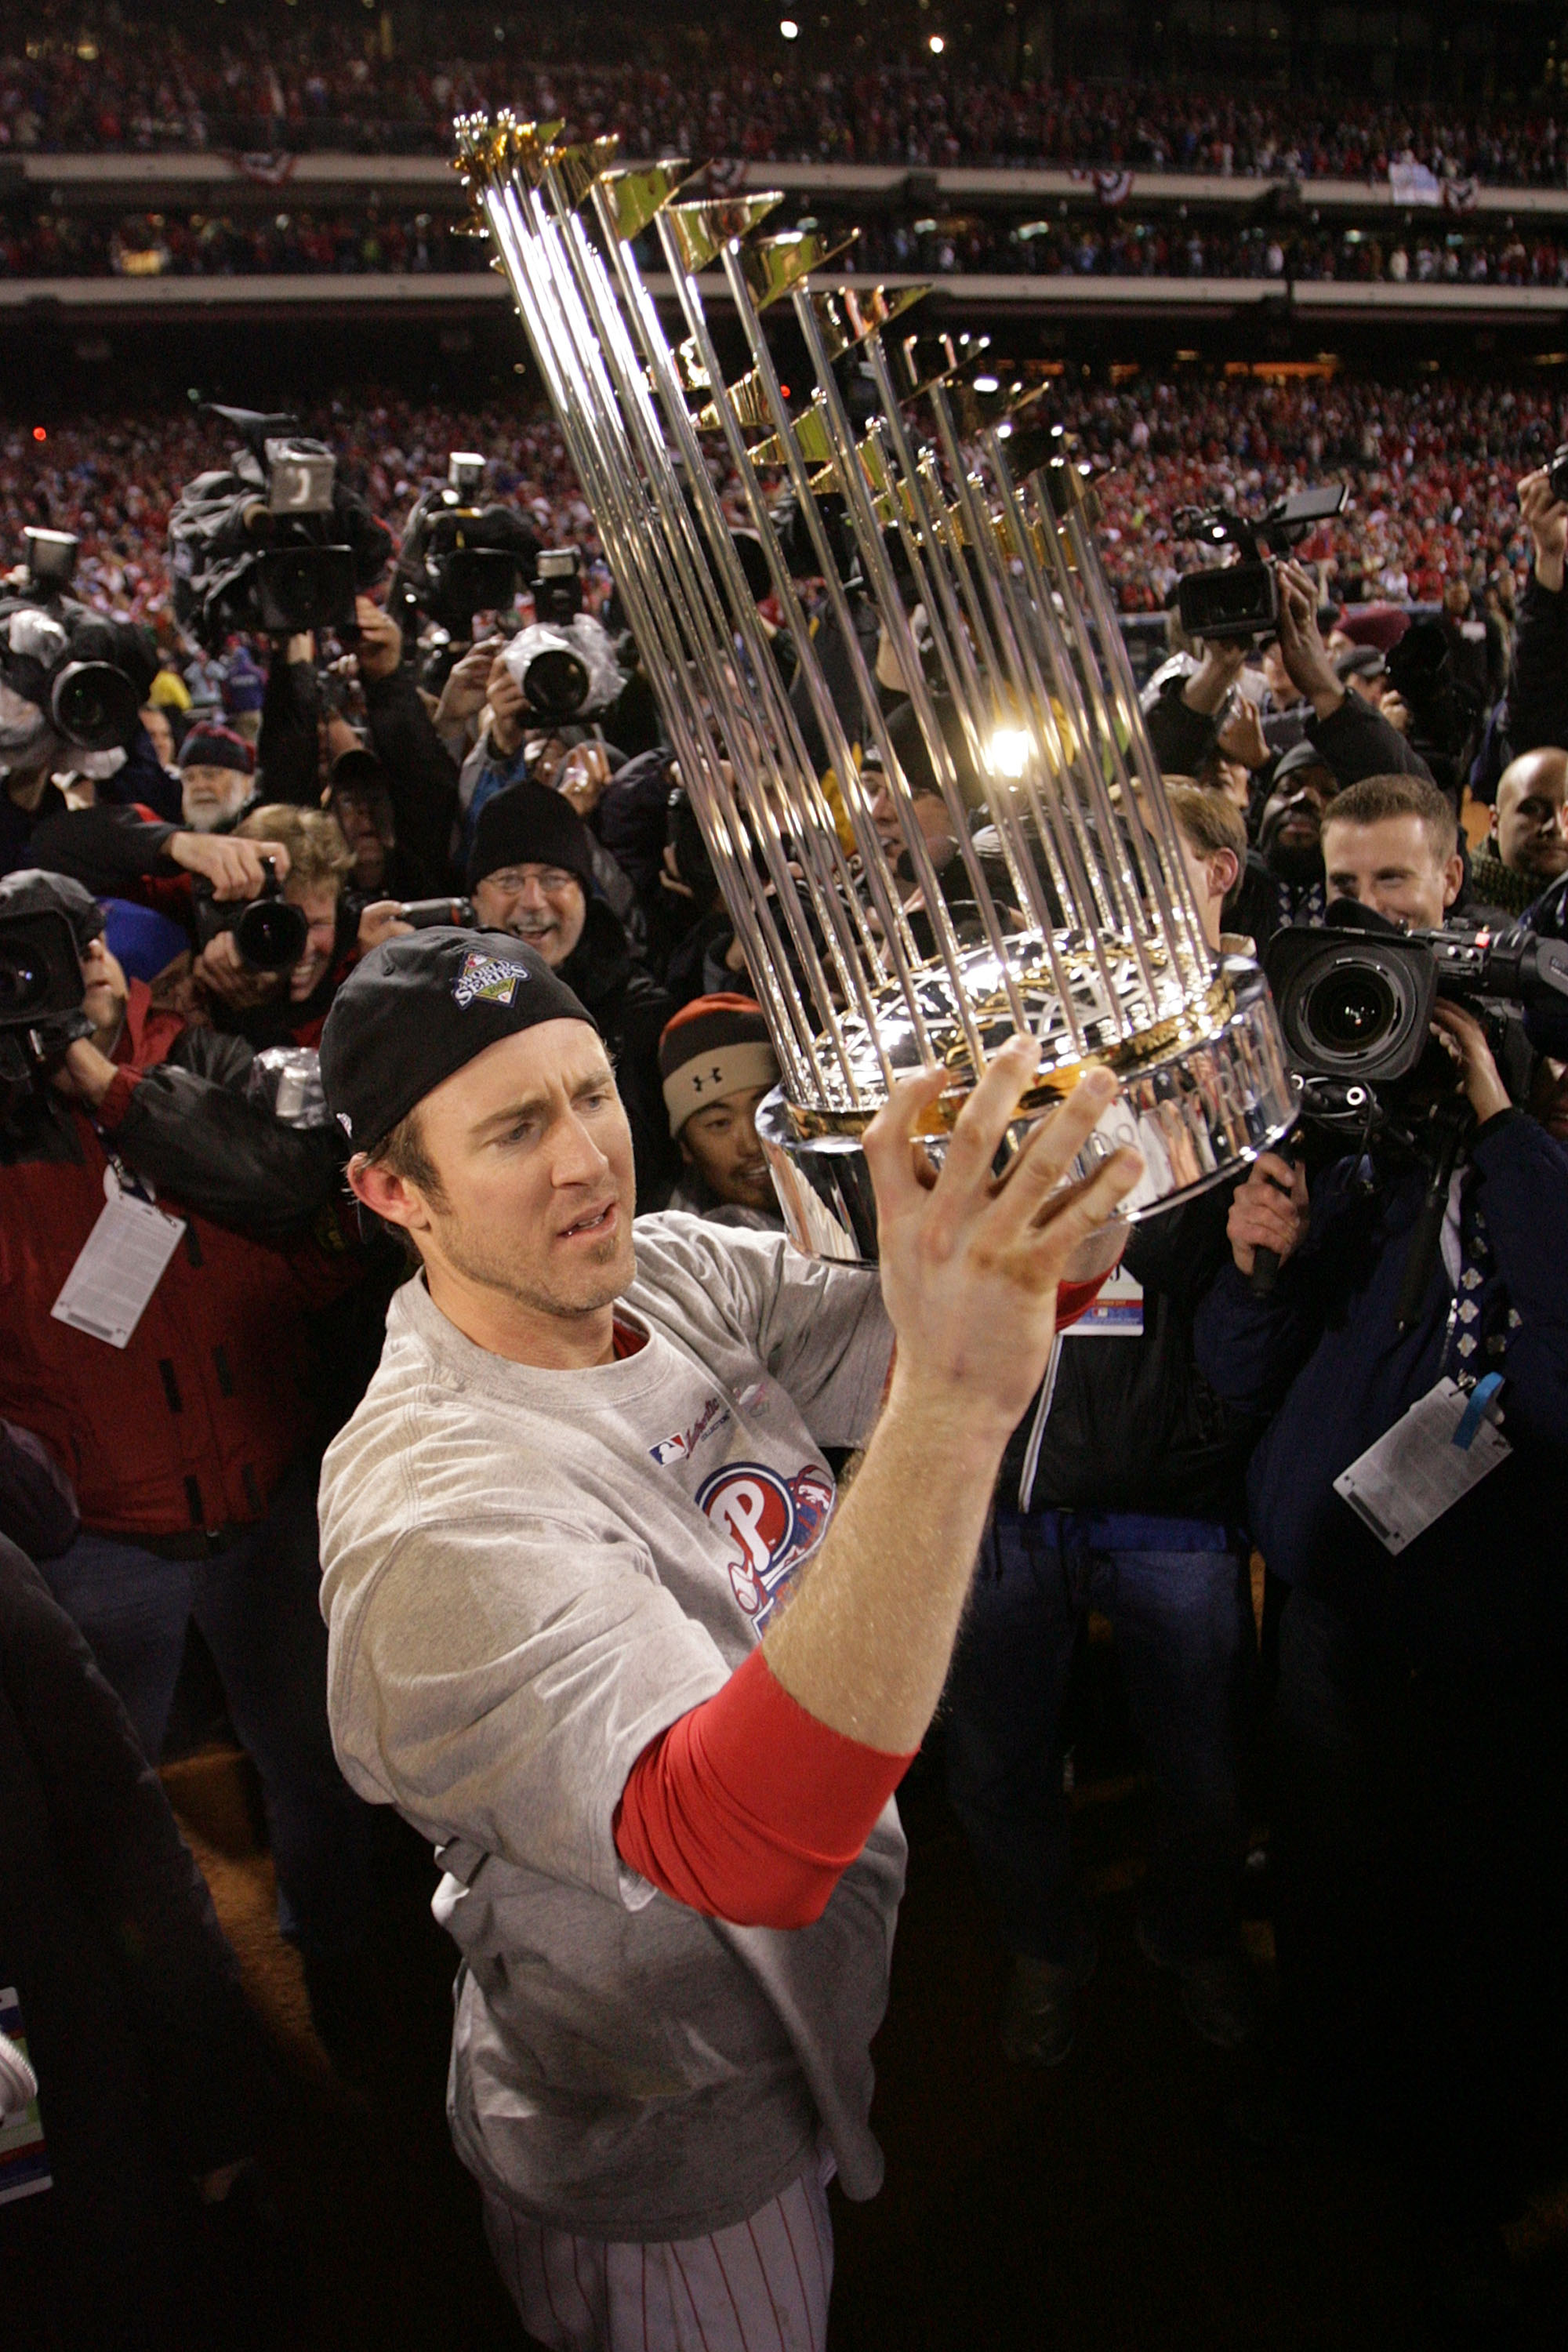 PHILADELPHIA - OCTOBER 29:  Chase Utley #26 of the Philadelphia Phillies celebrates with the World Series trophy after their 4-3 win against the Tampa Bay Rays during the continuation of game five of the 2008 MLB World Series on October 29, 2008 at Citize